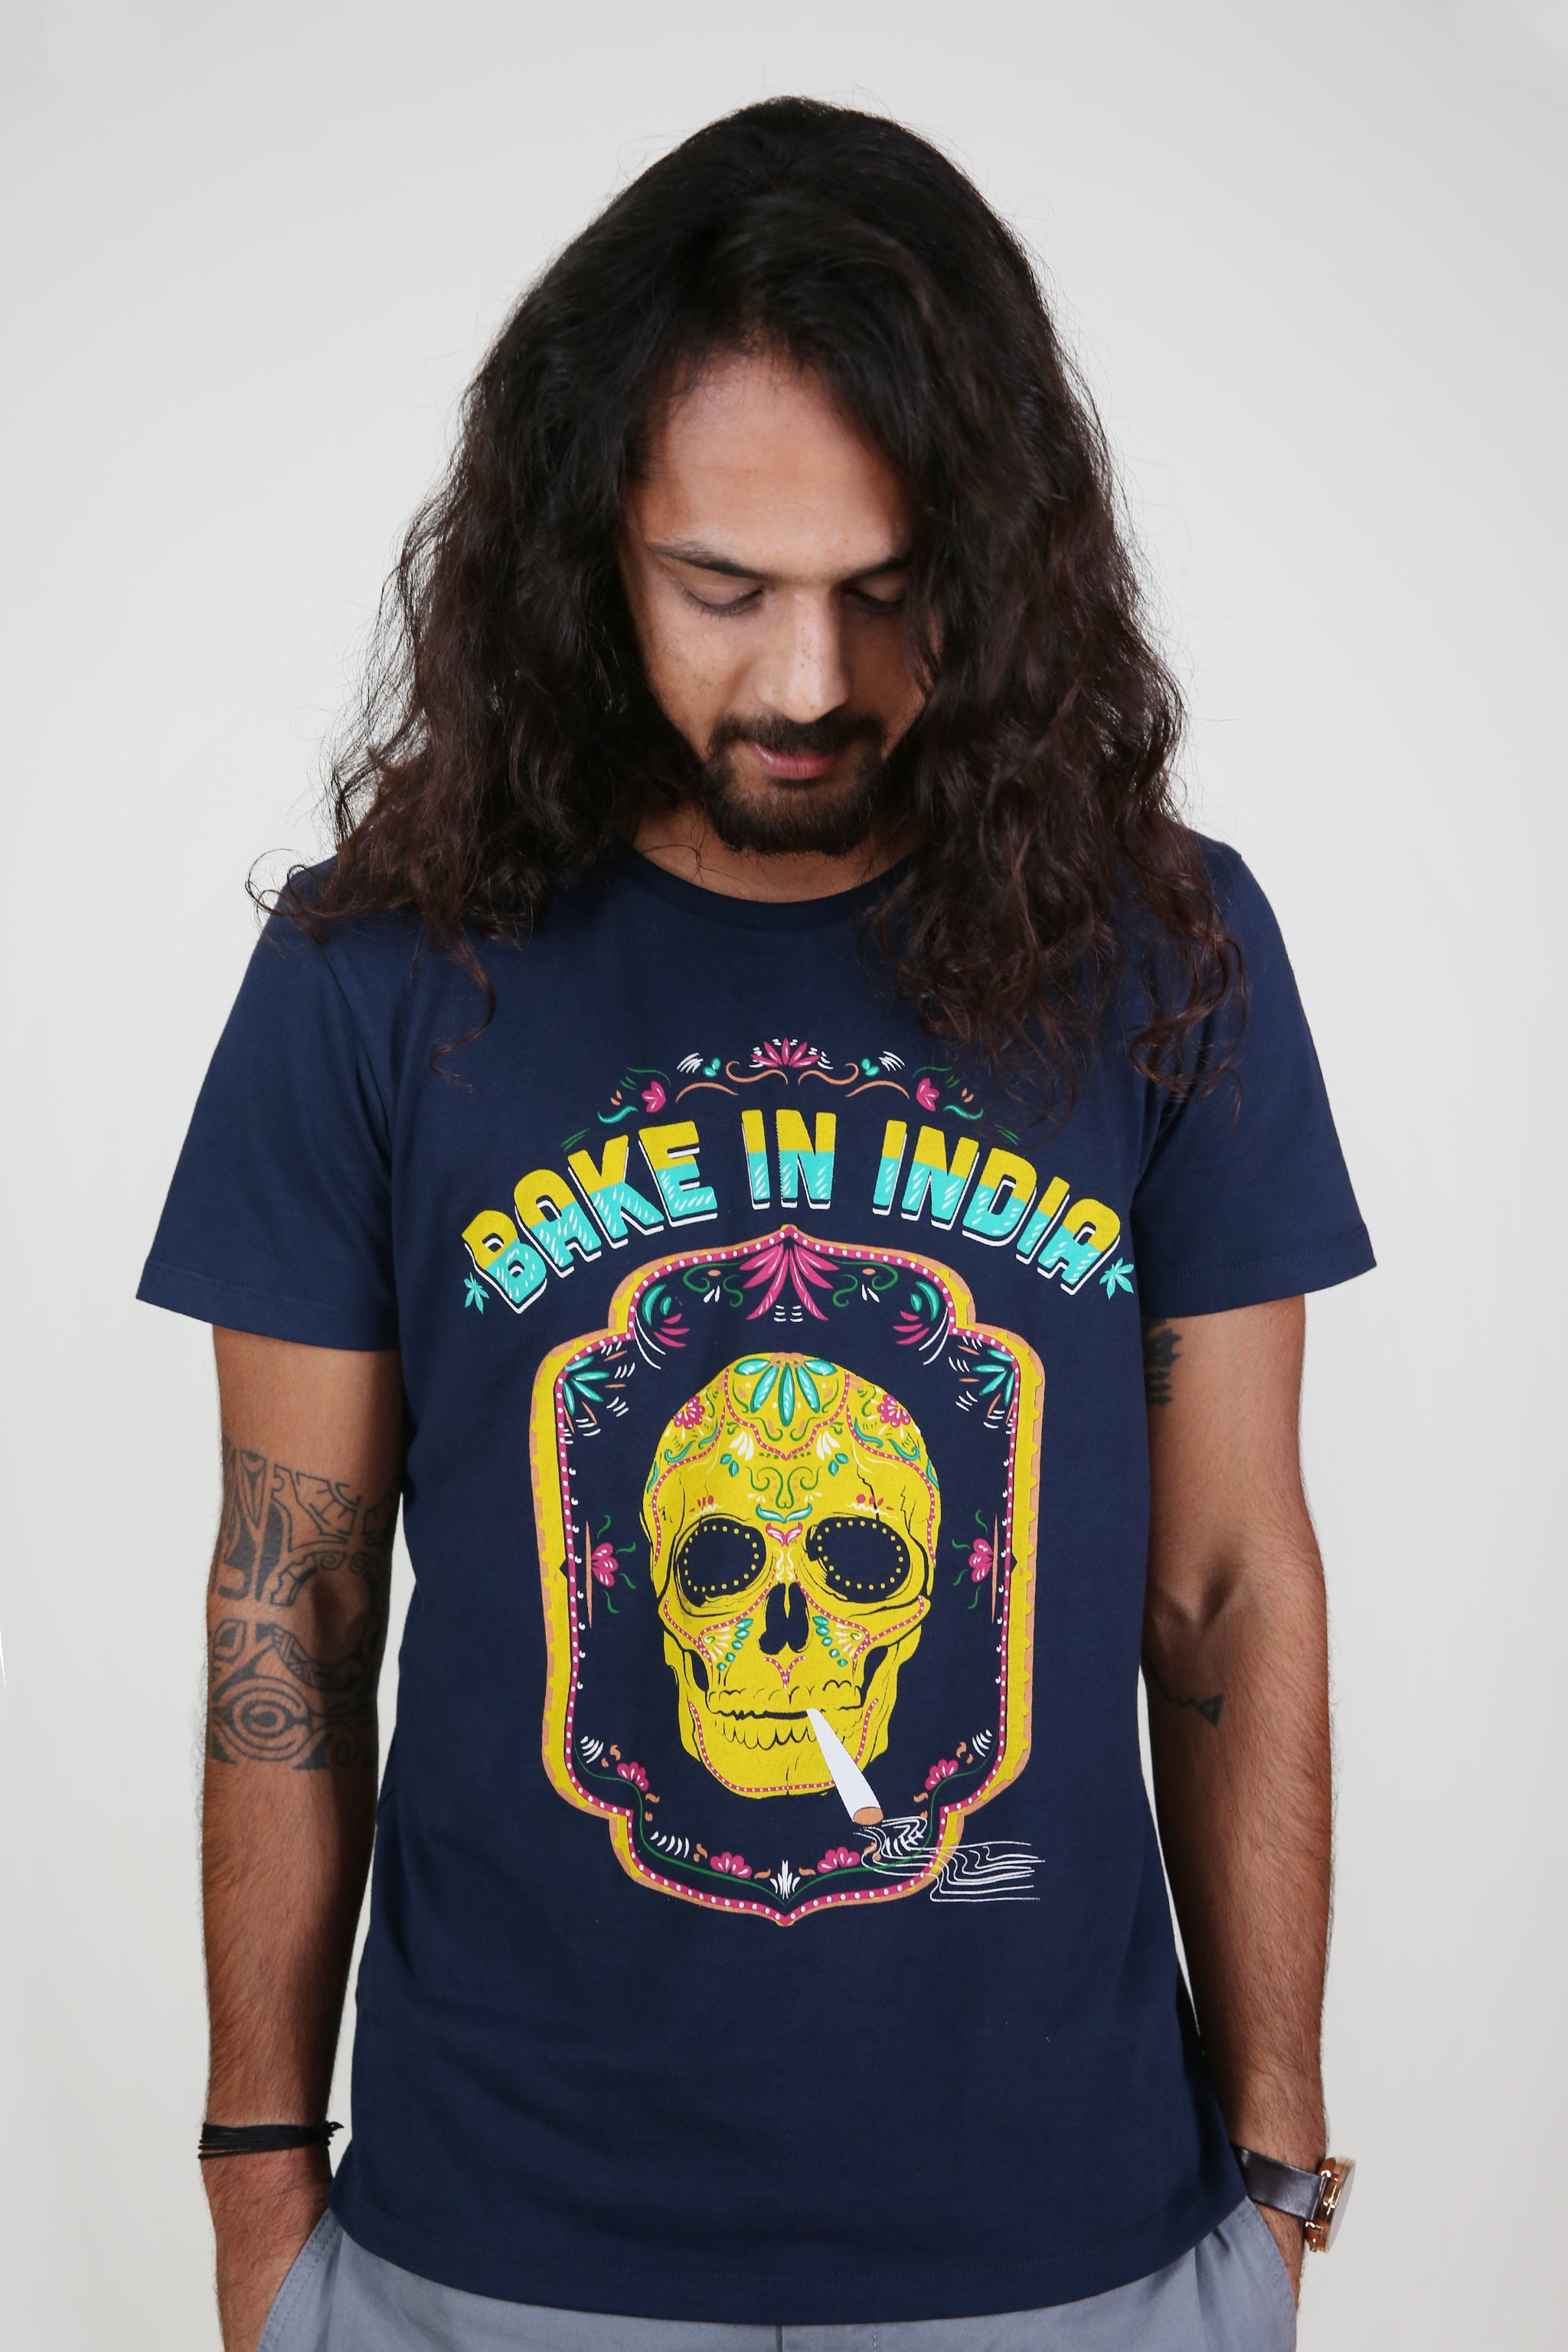 men's t shirt online india